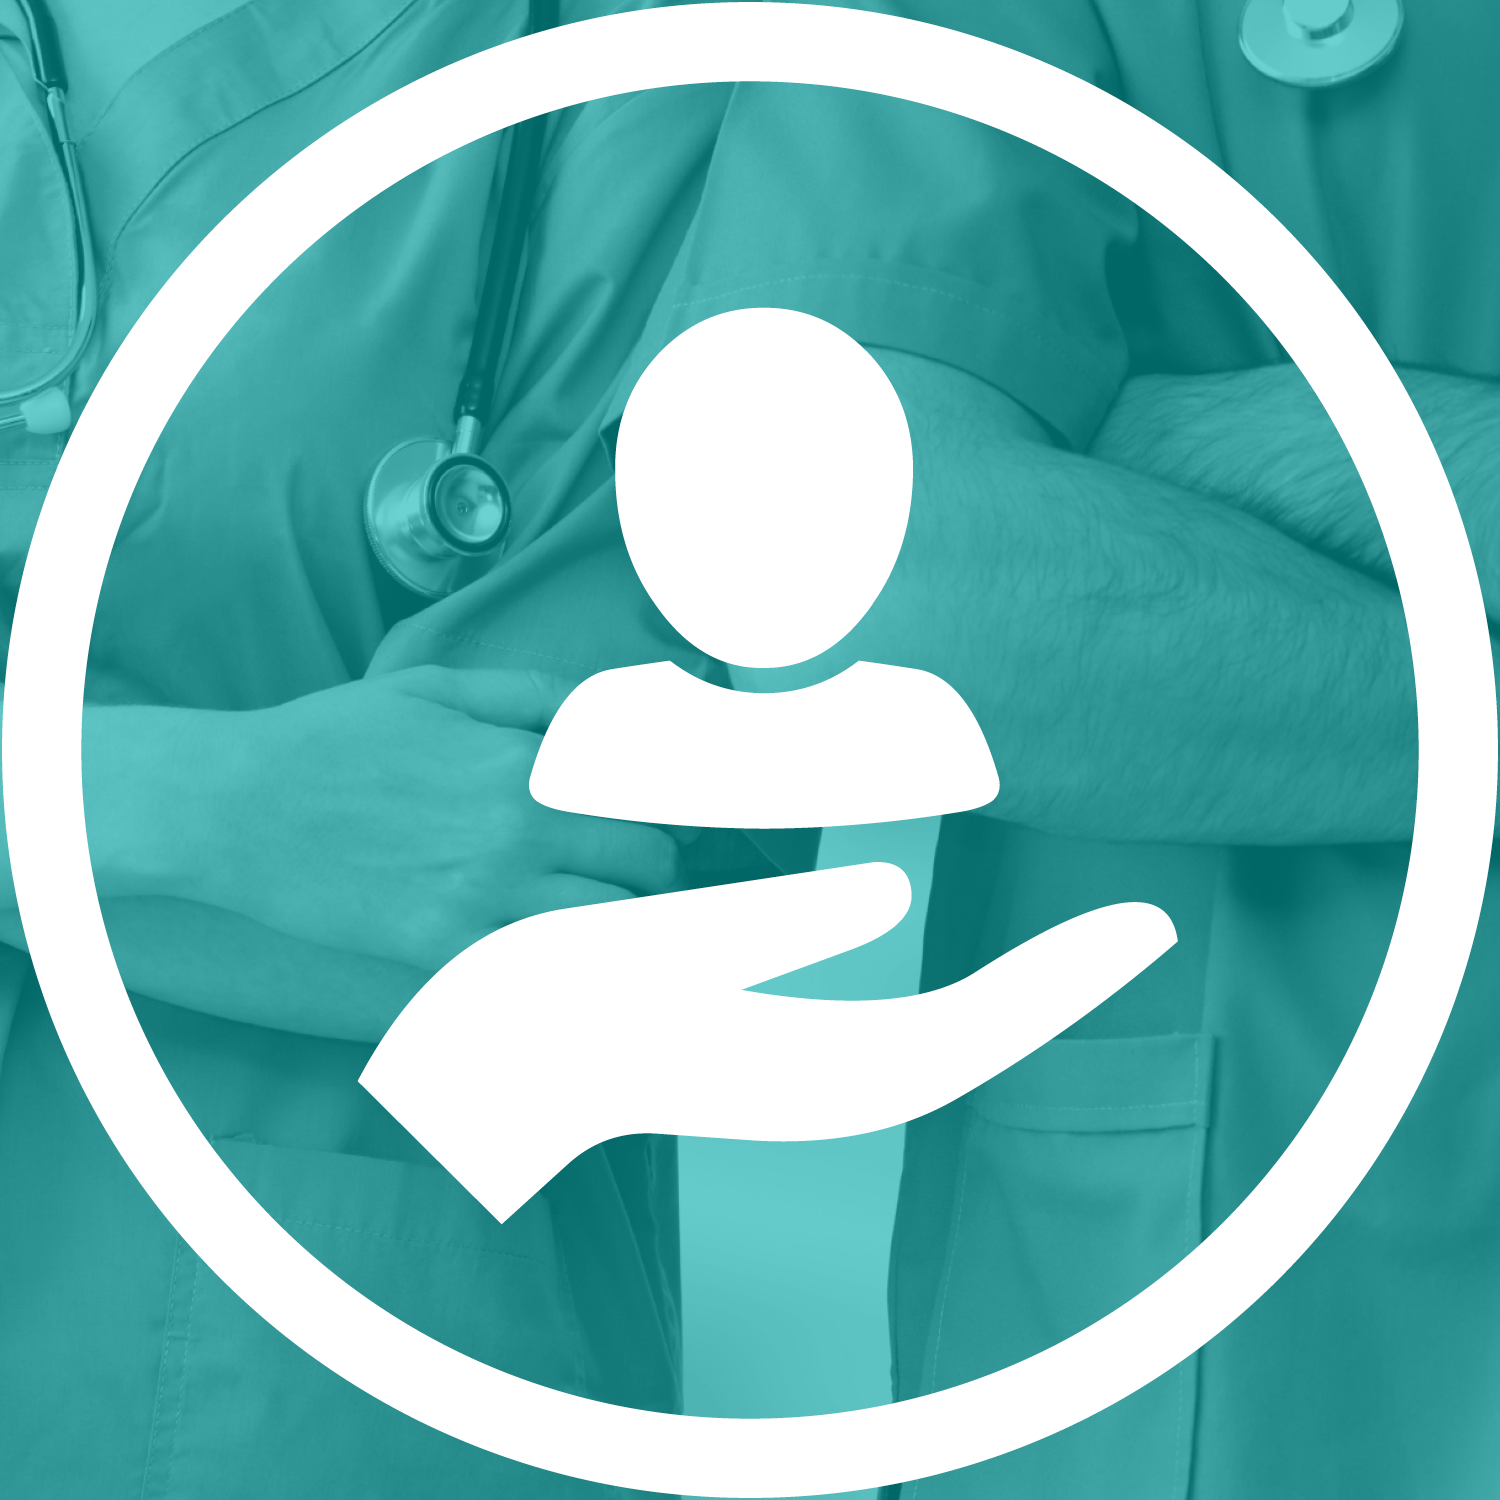 Hand and human icon (Healthcare)